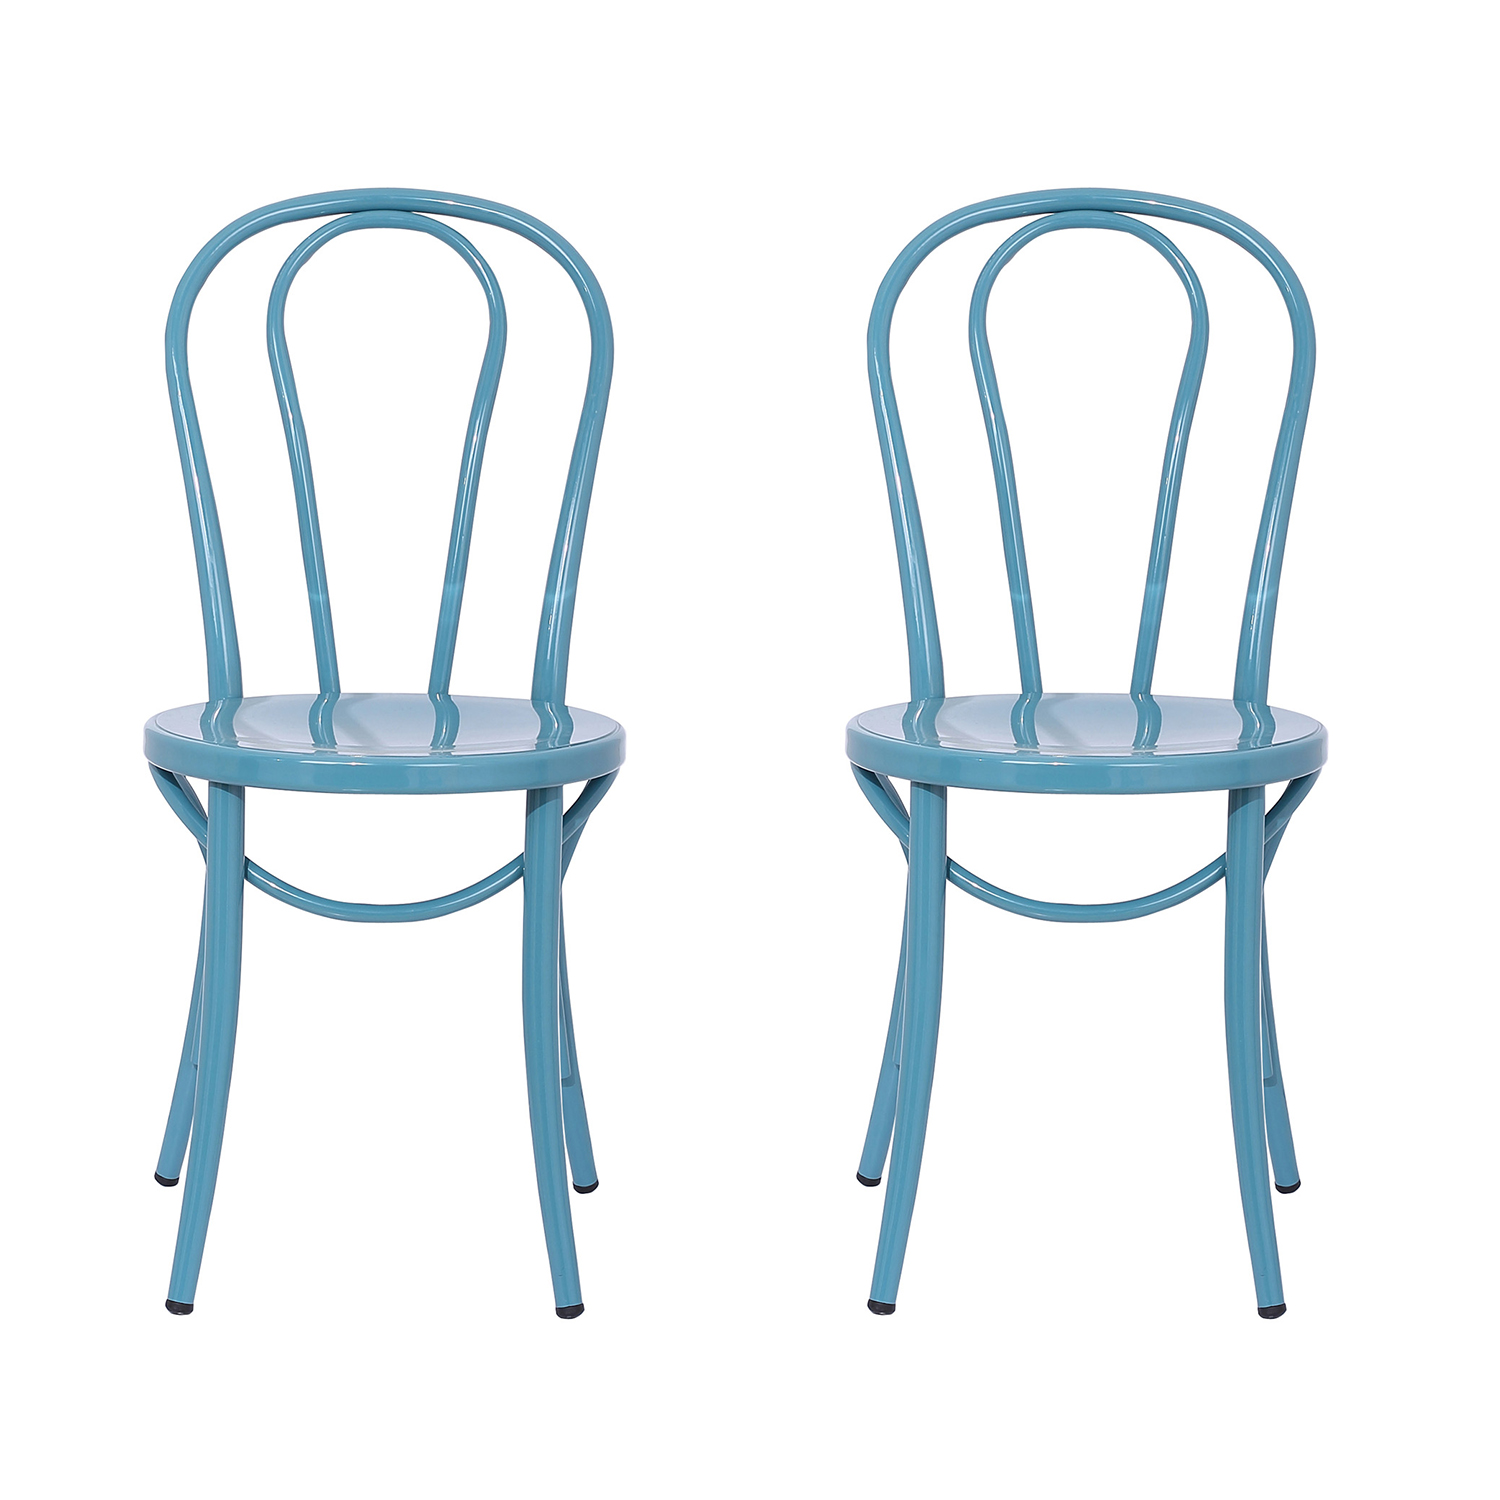 Teal Bistro Chair Set of 2